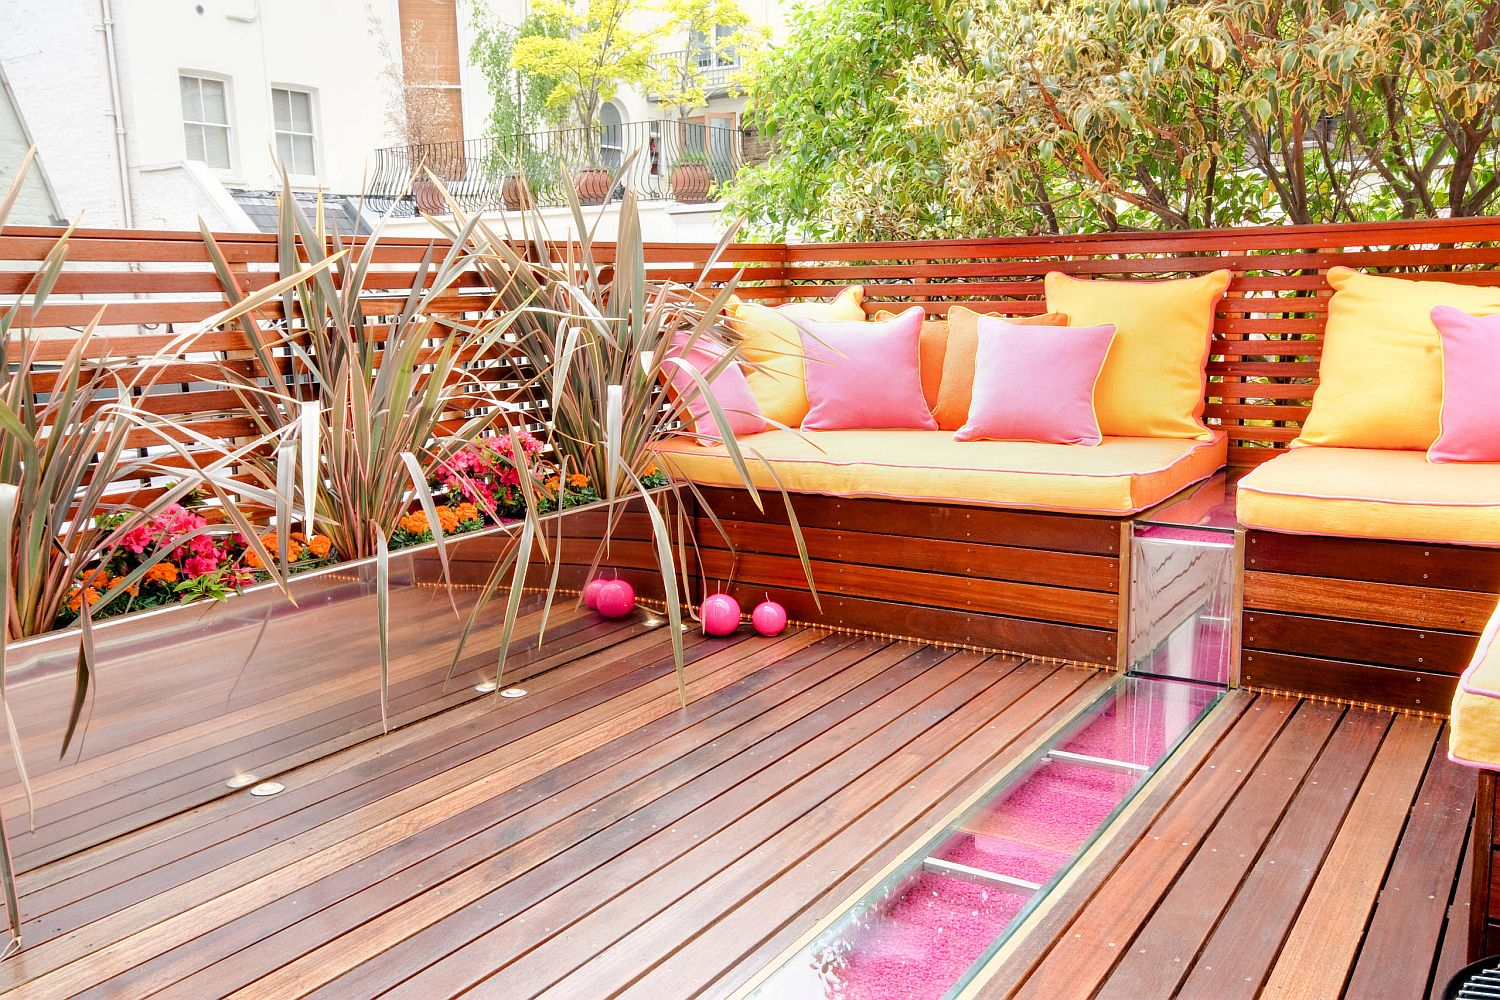 Throw pillows bring pink ad orange to the outdoor deck